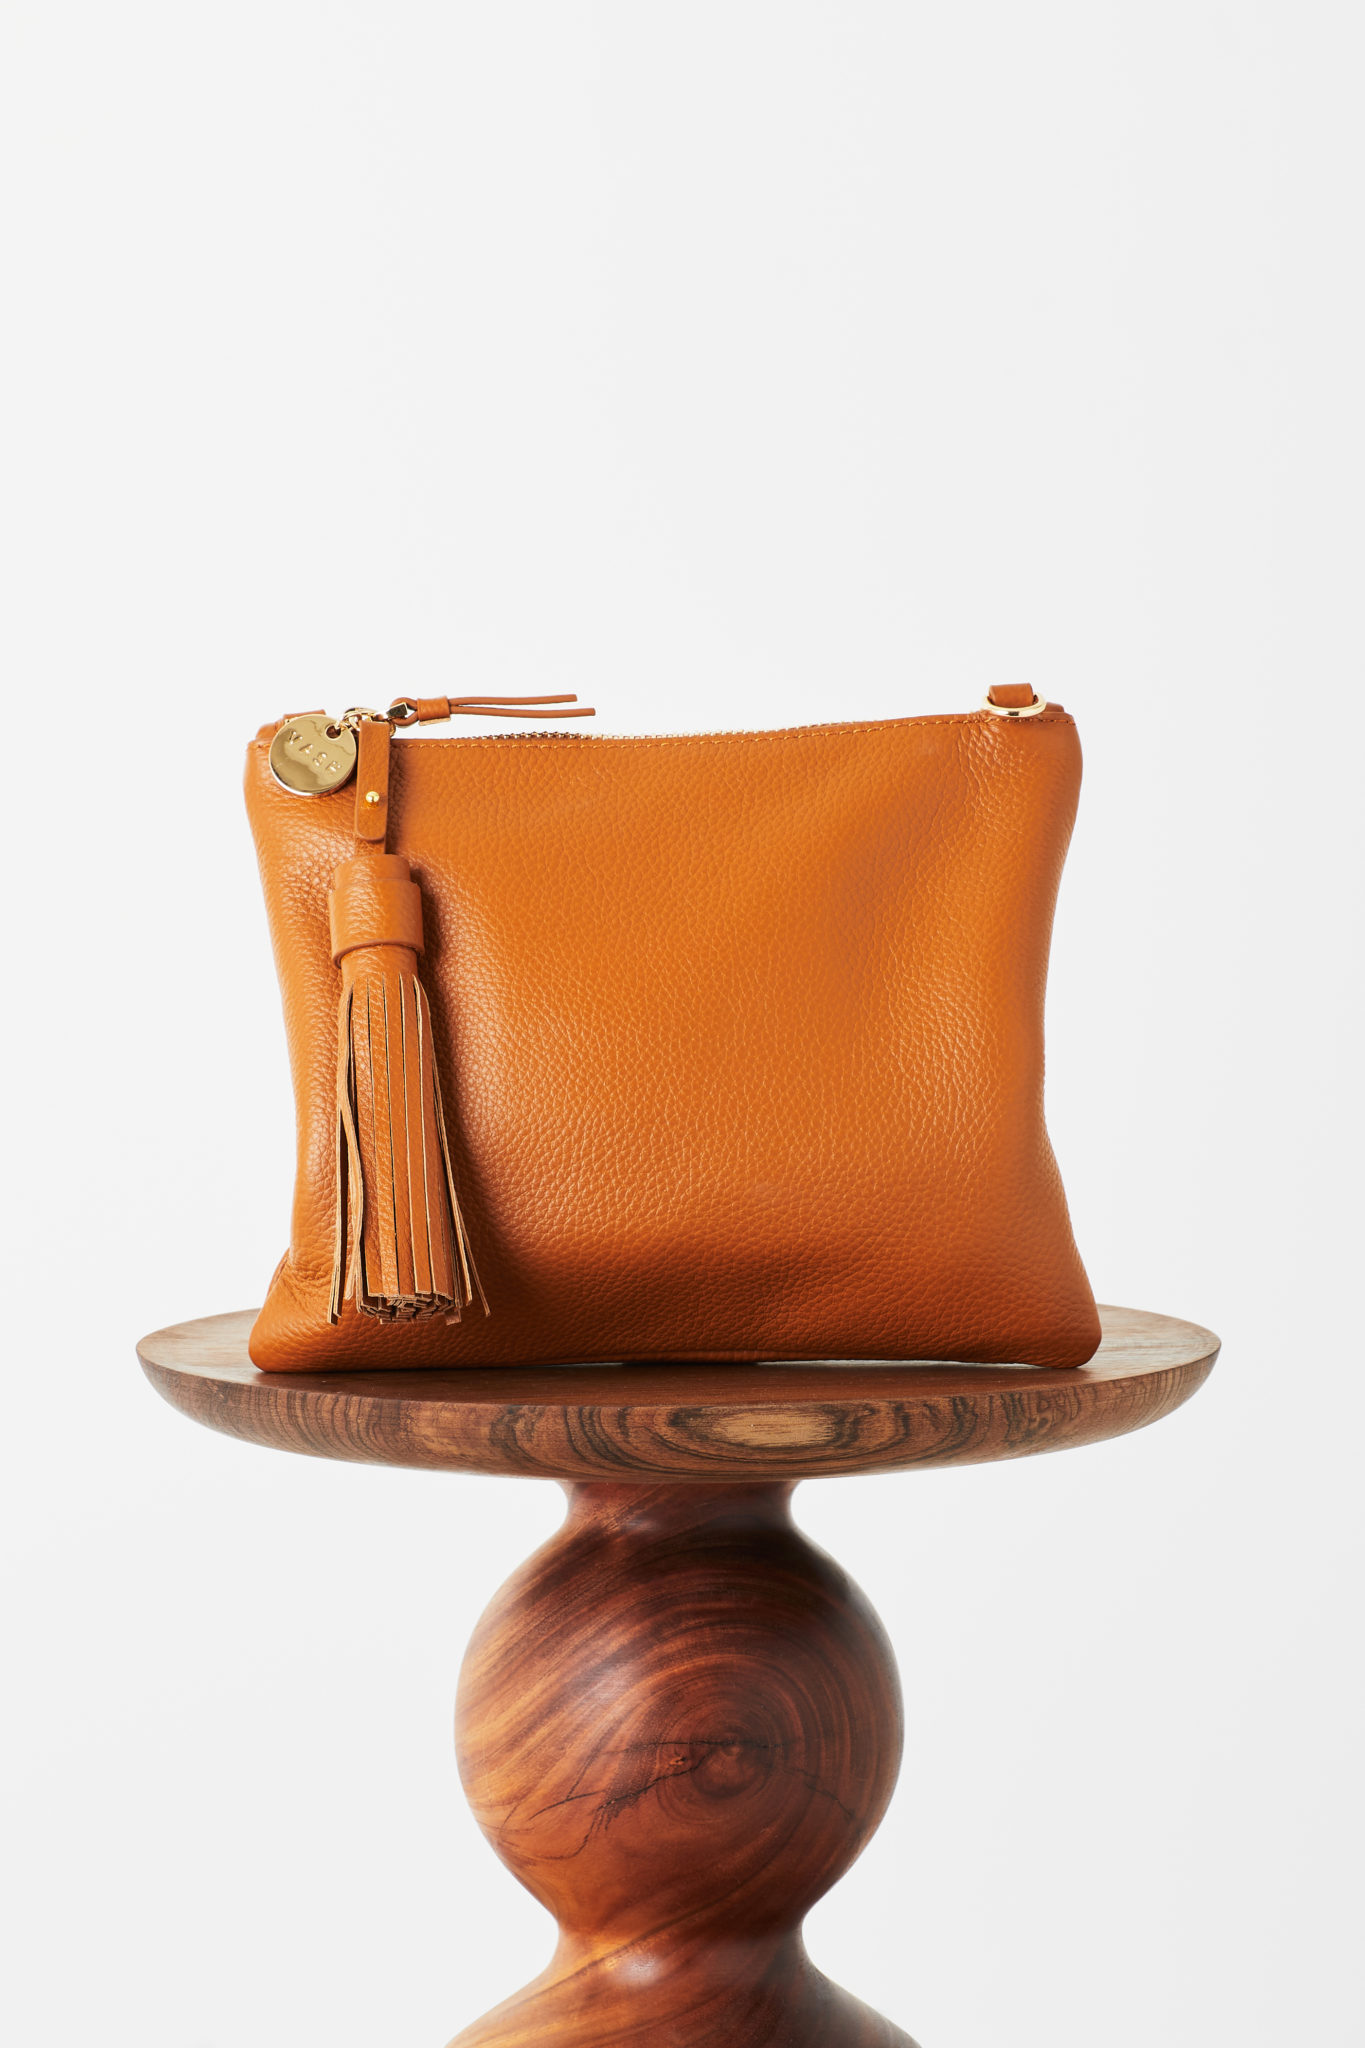 Mickey Flat Clutch In Orange Spice Leather